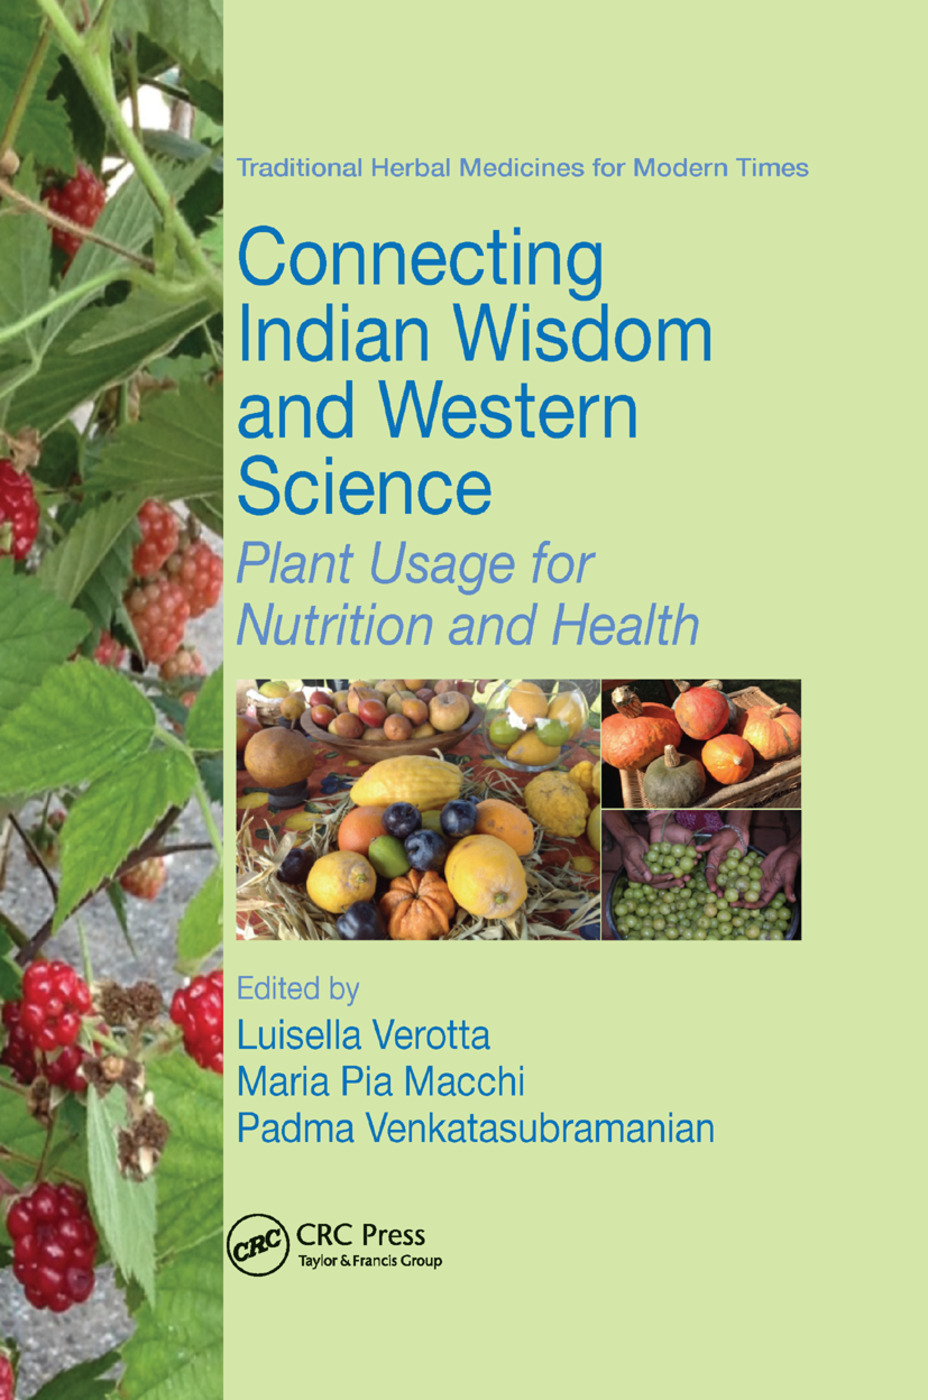 Connecting Indian Wisdom and Western Science